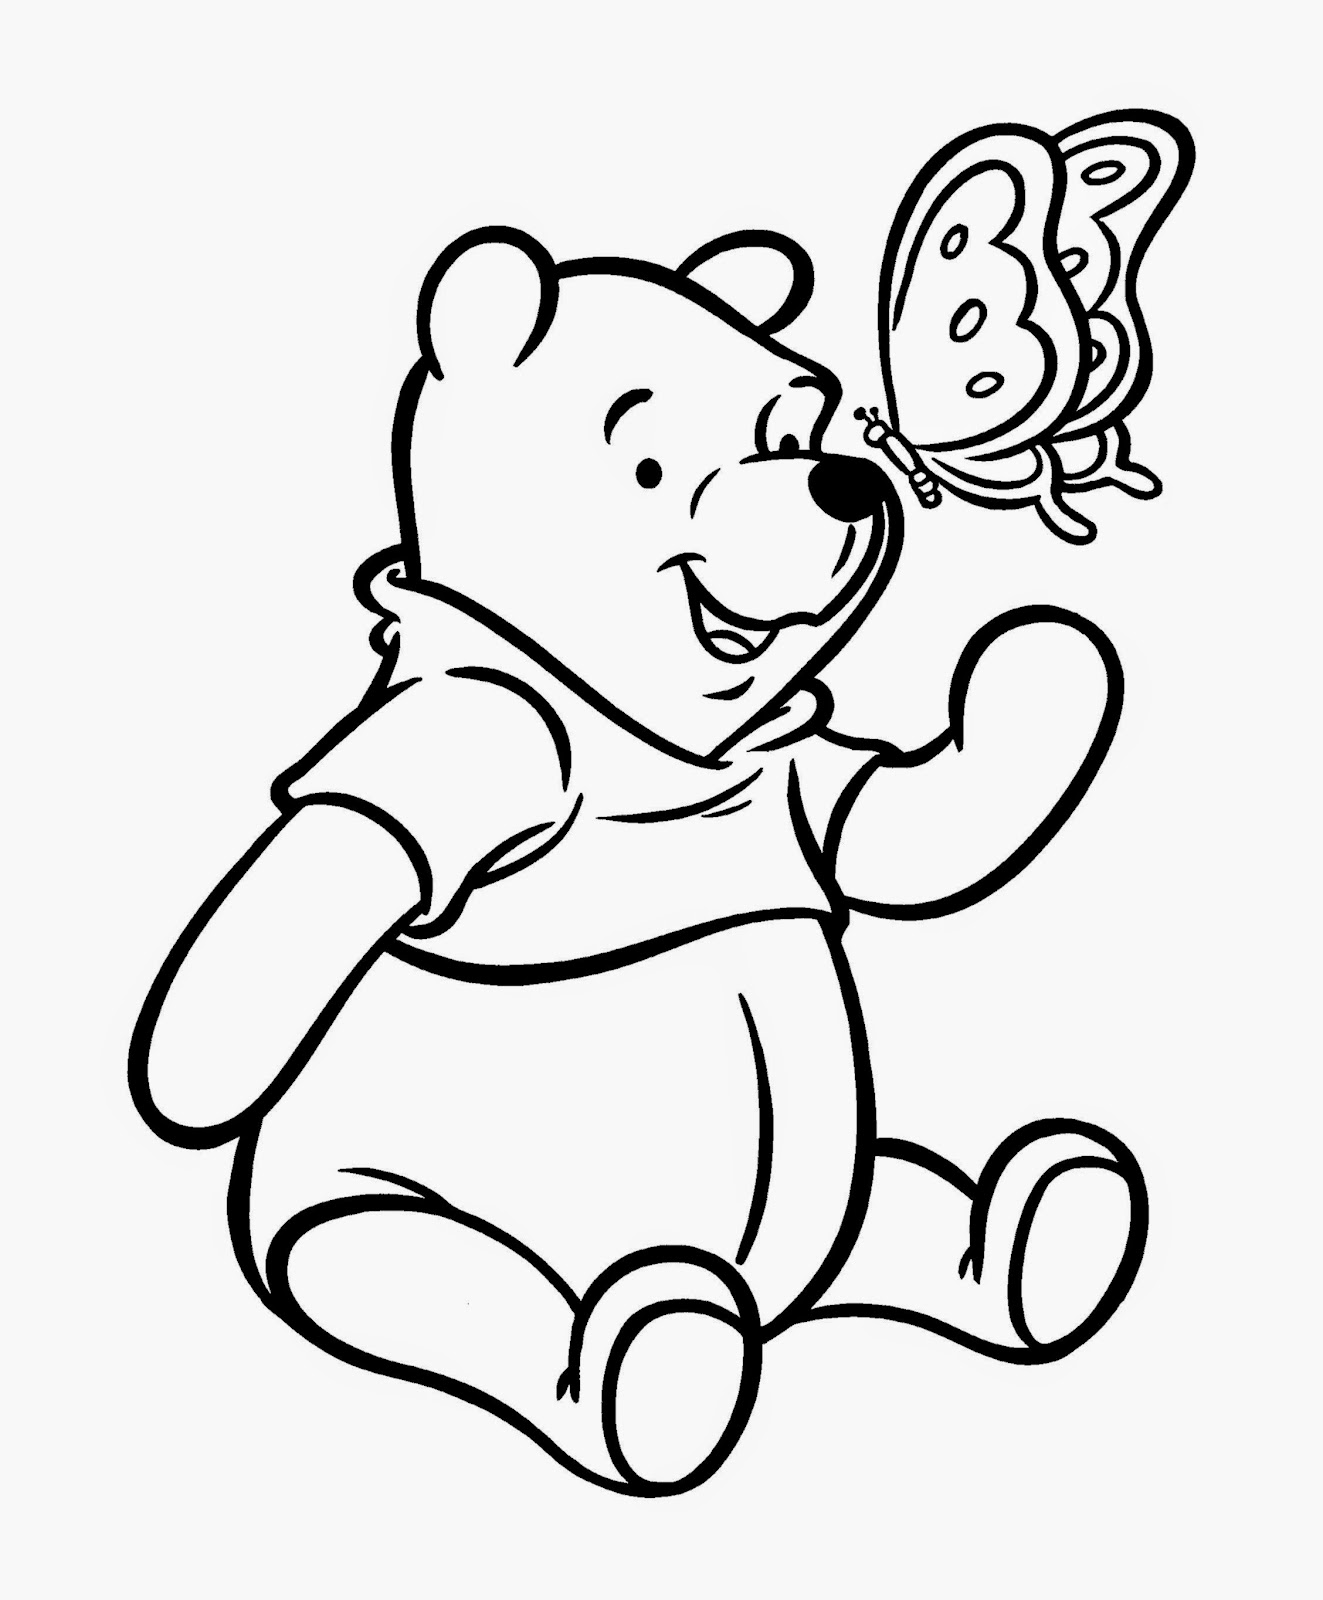 Winnie the pooh coloring sheets free coloring sheet for Free pooh bear coloring pages